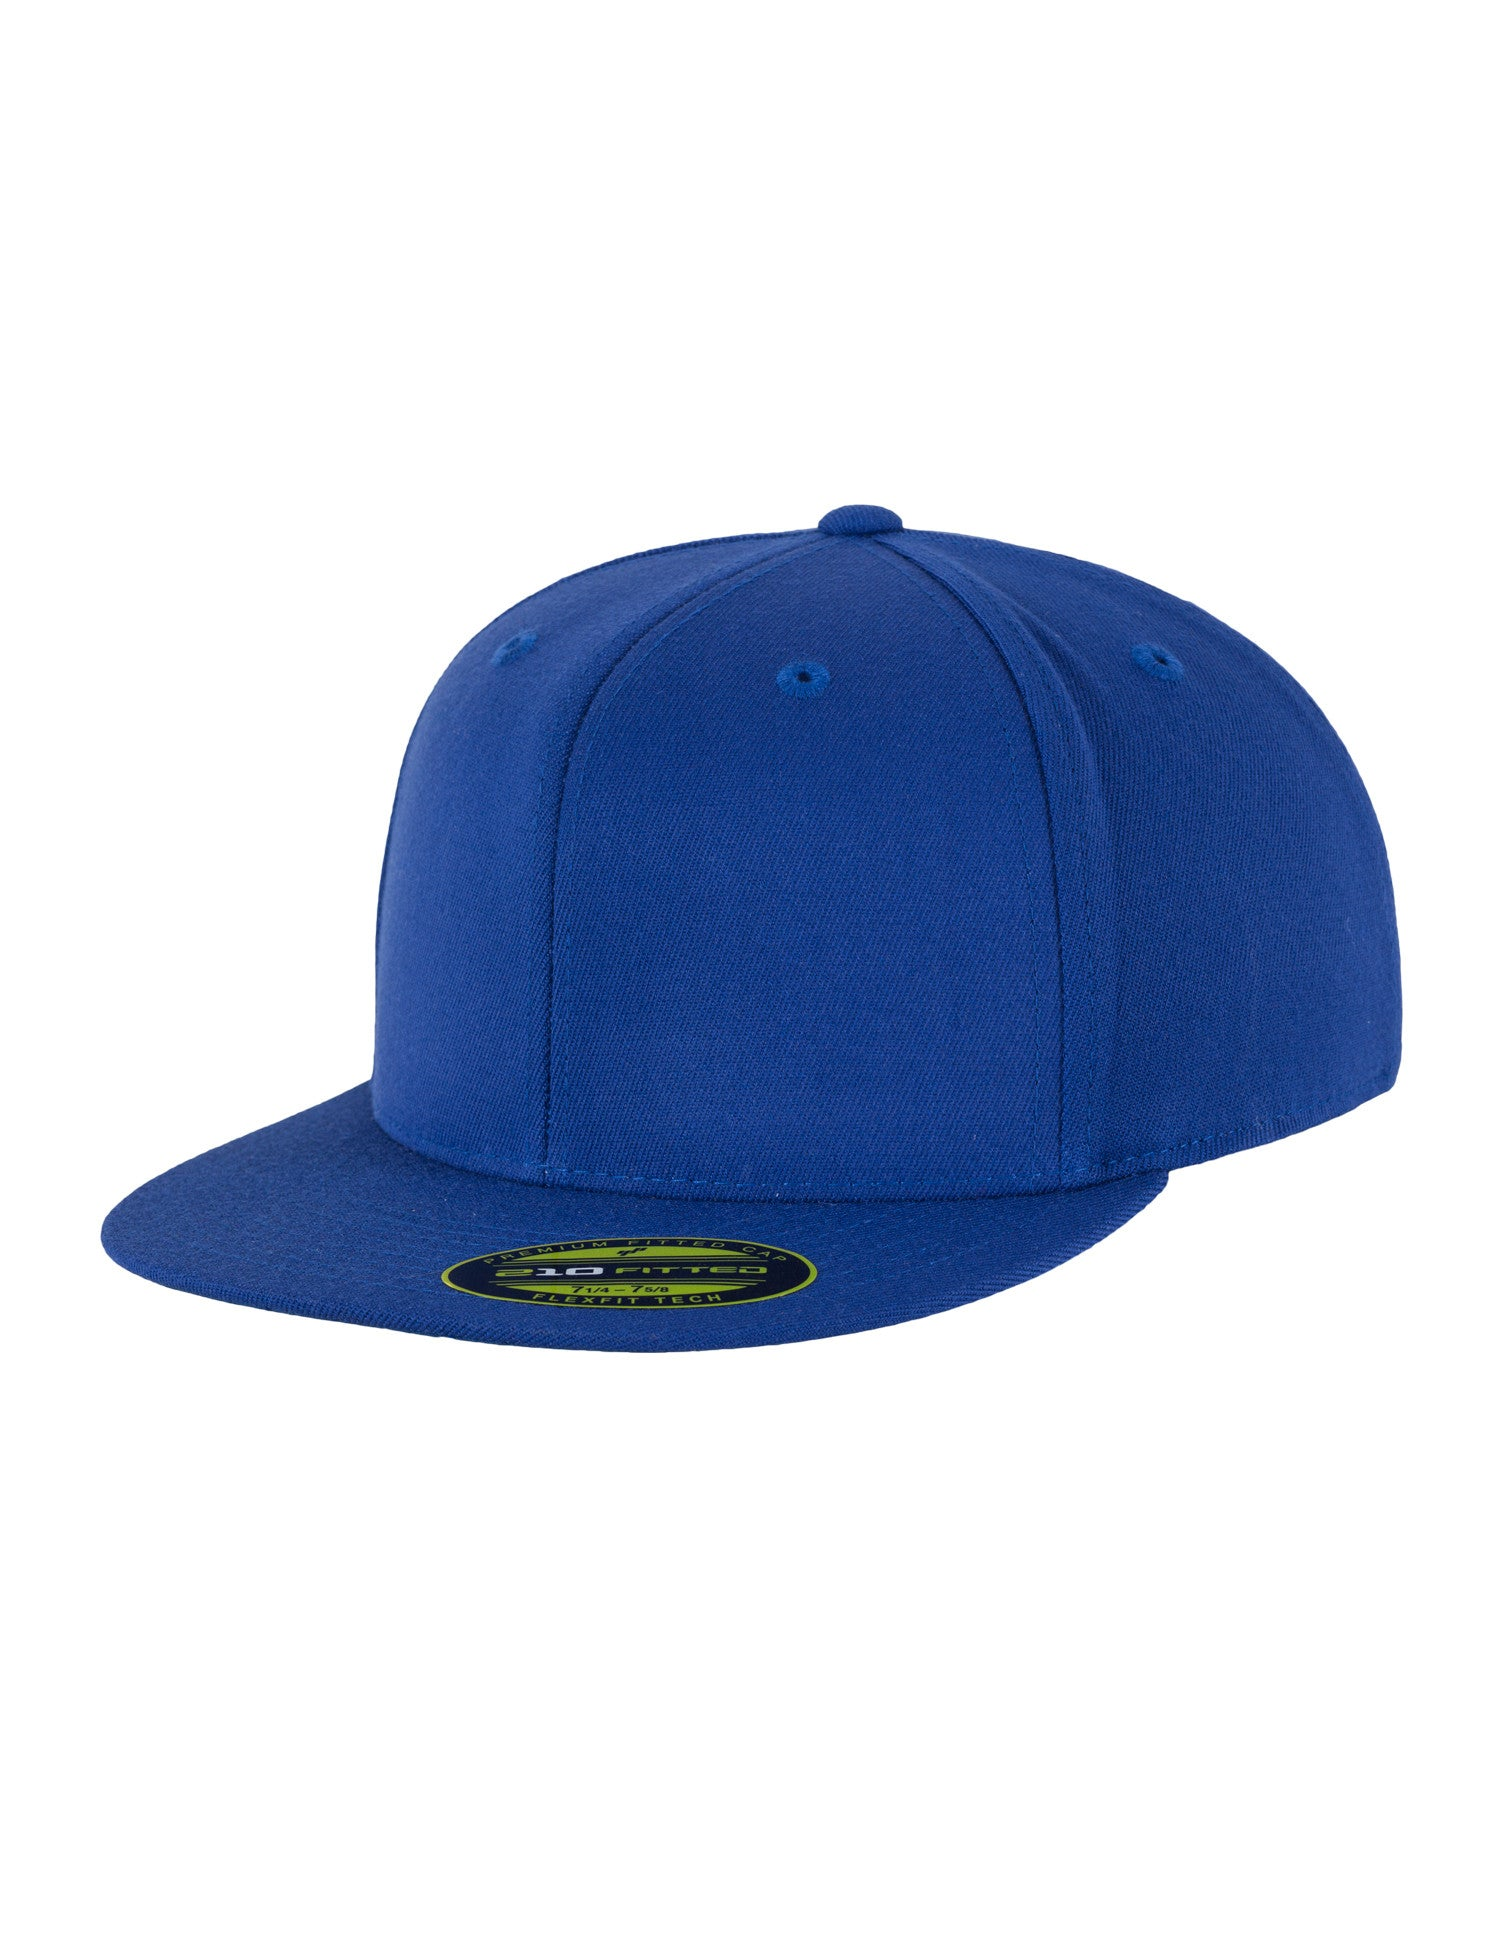 Premium 210 Fitted 6210 Blue